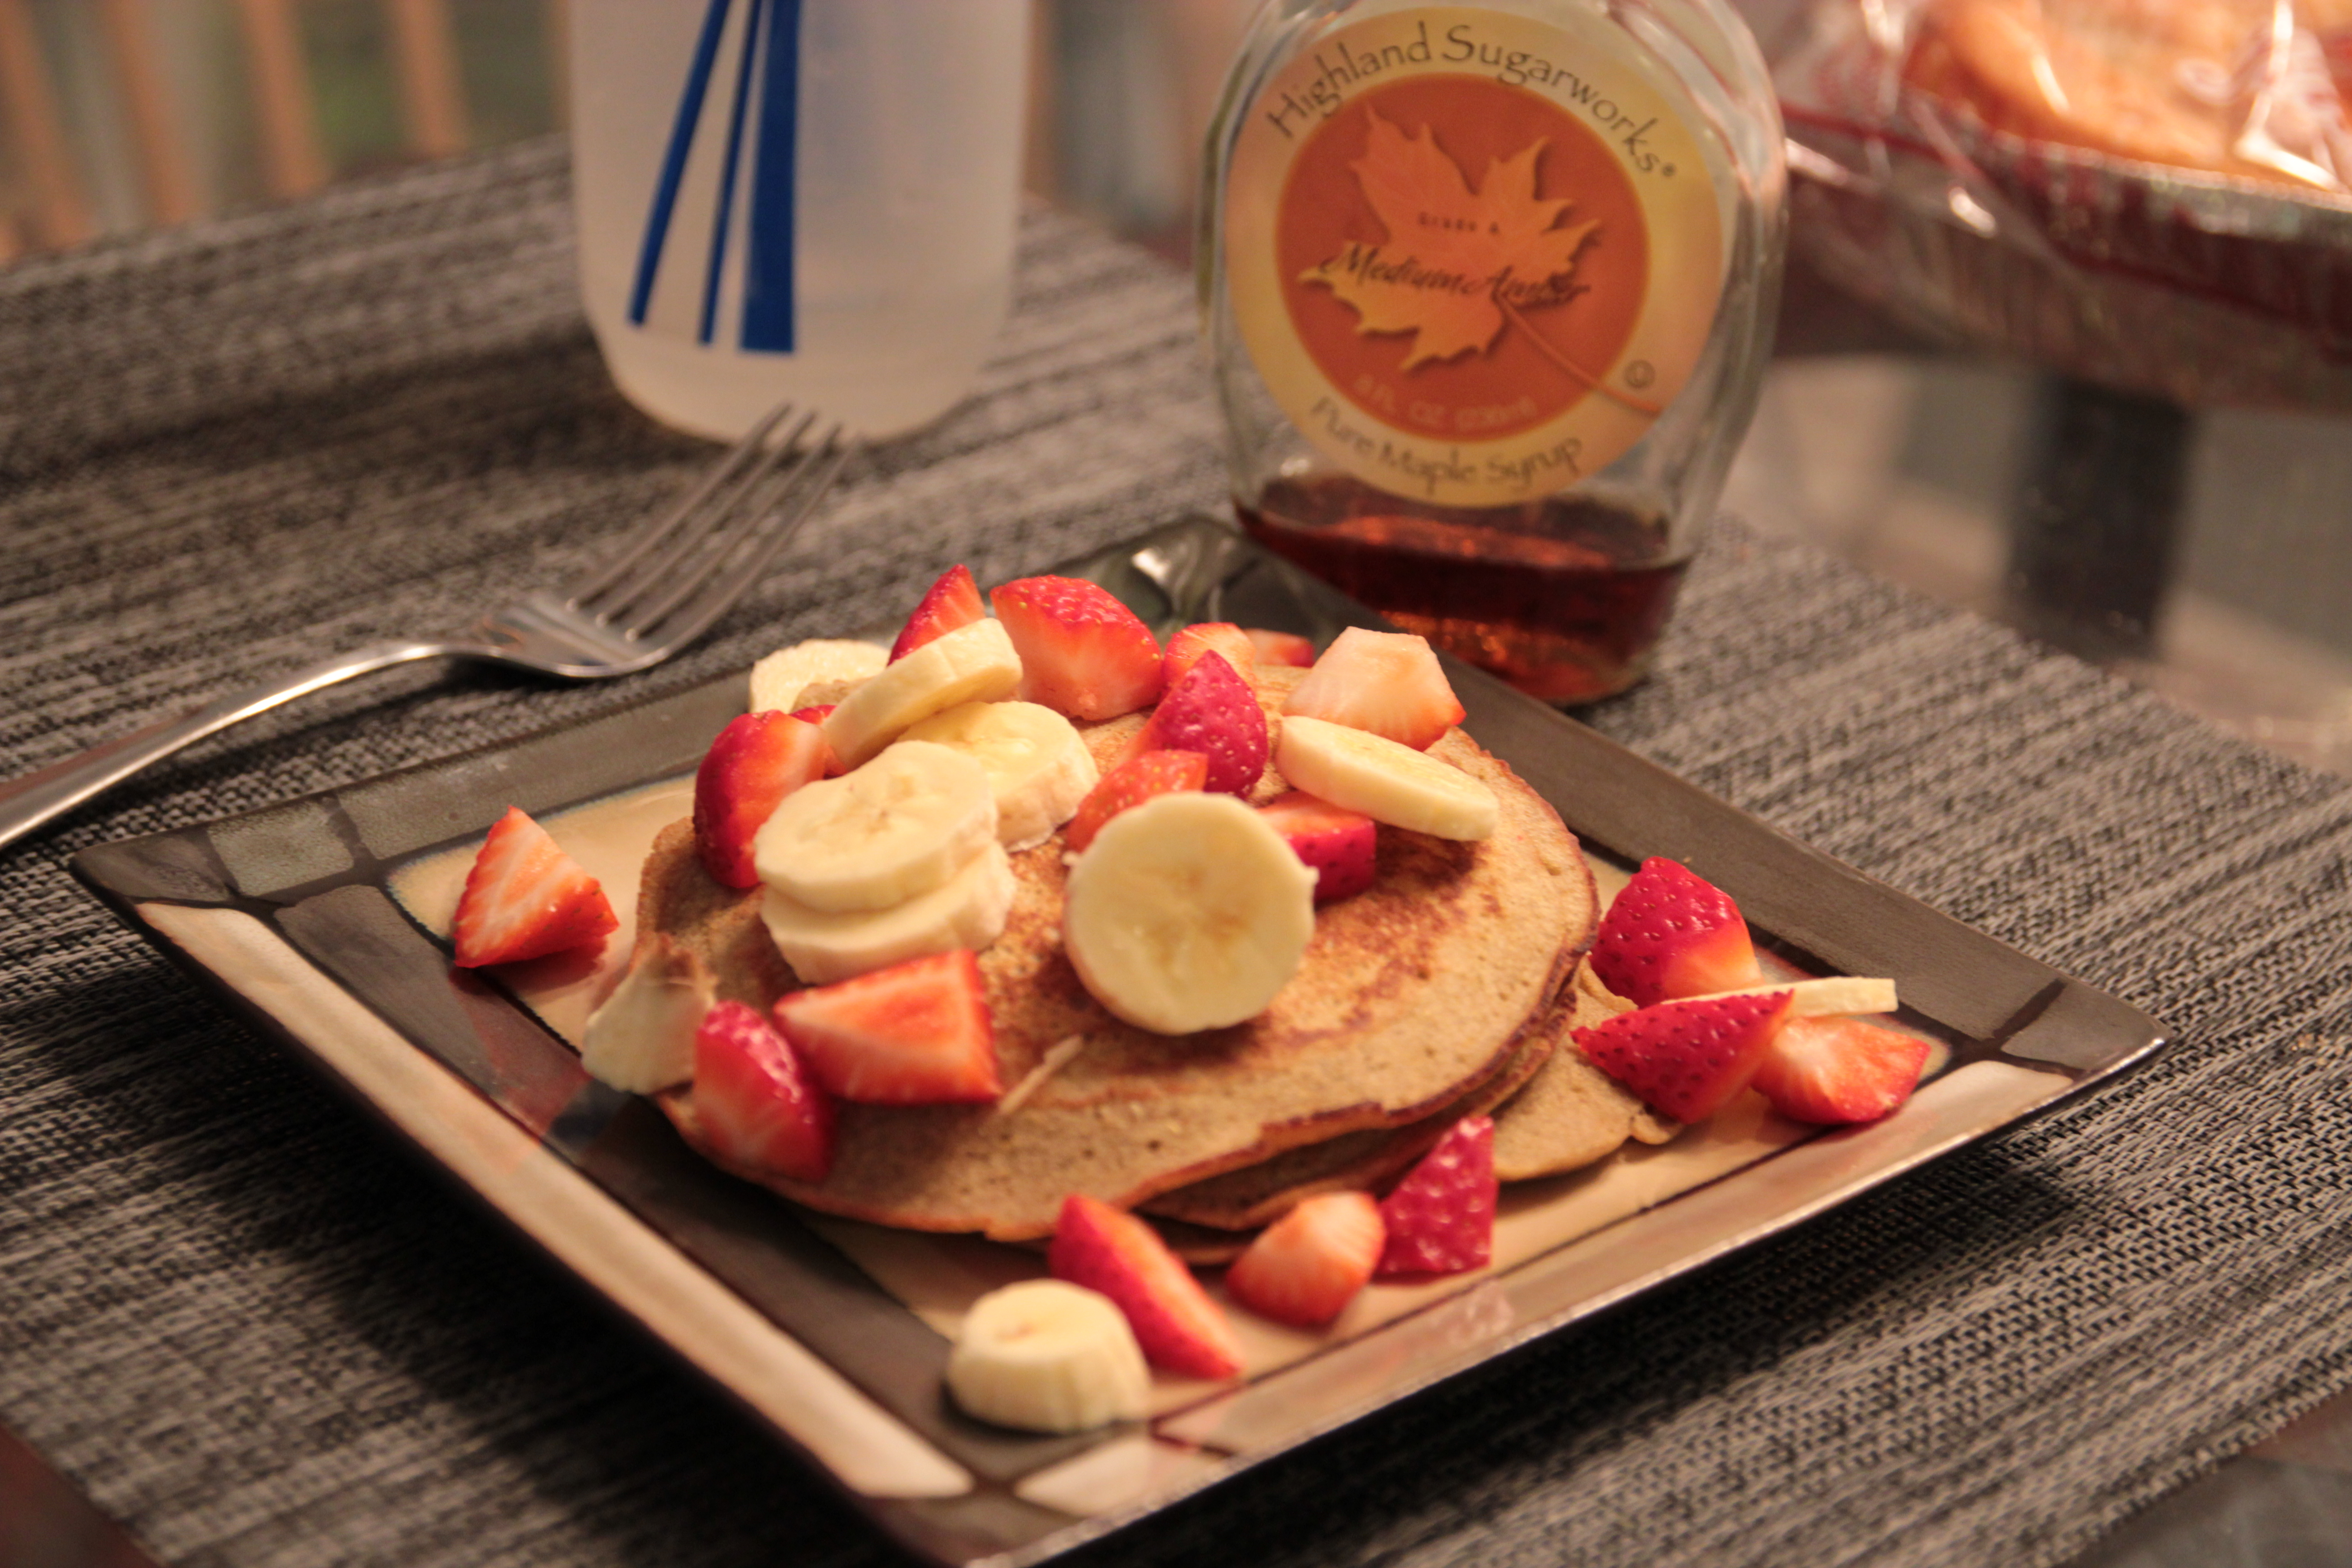 Buckwheat Corn meal pancake with straberries and bananas